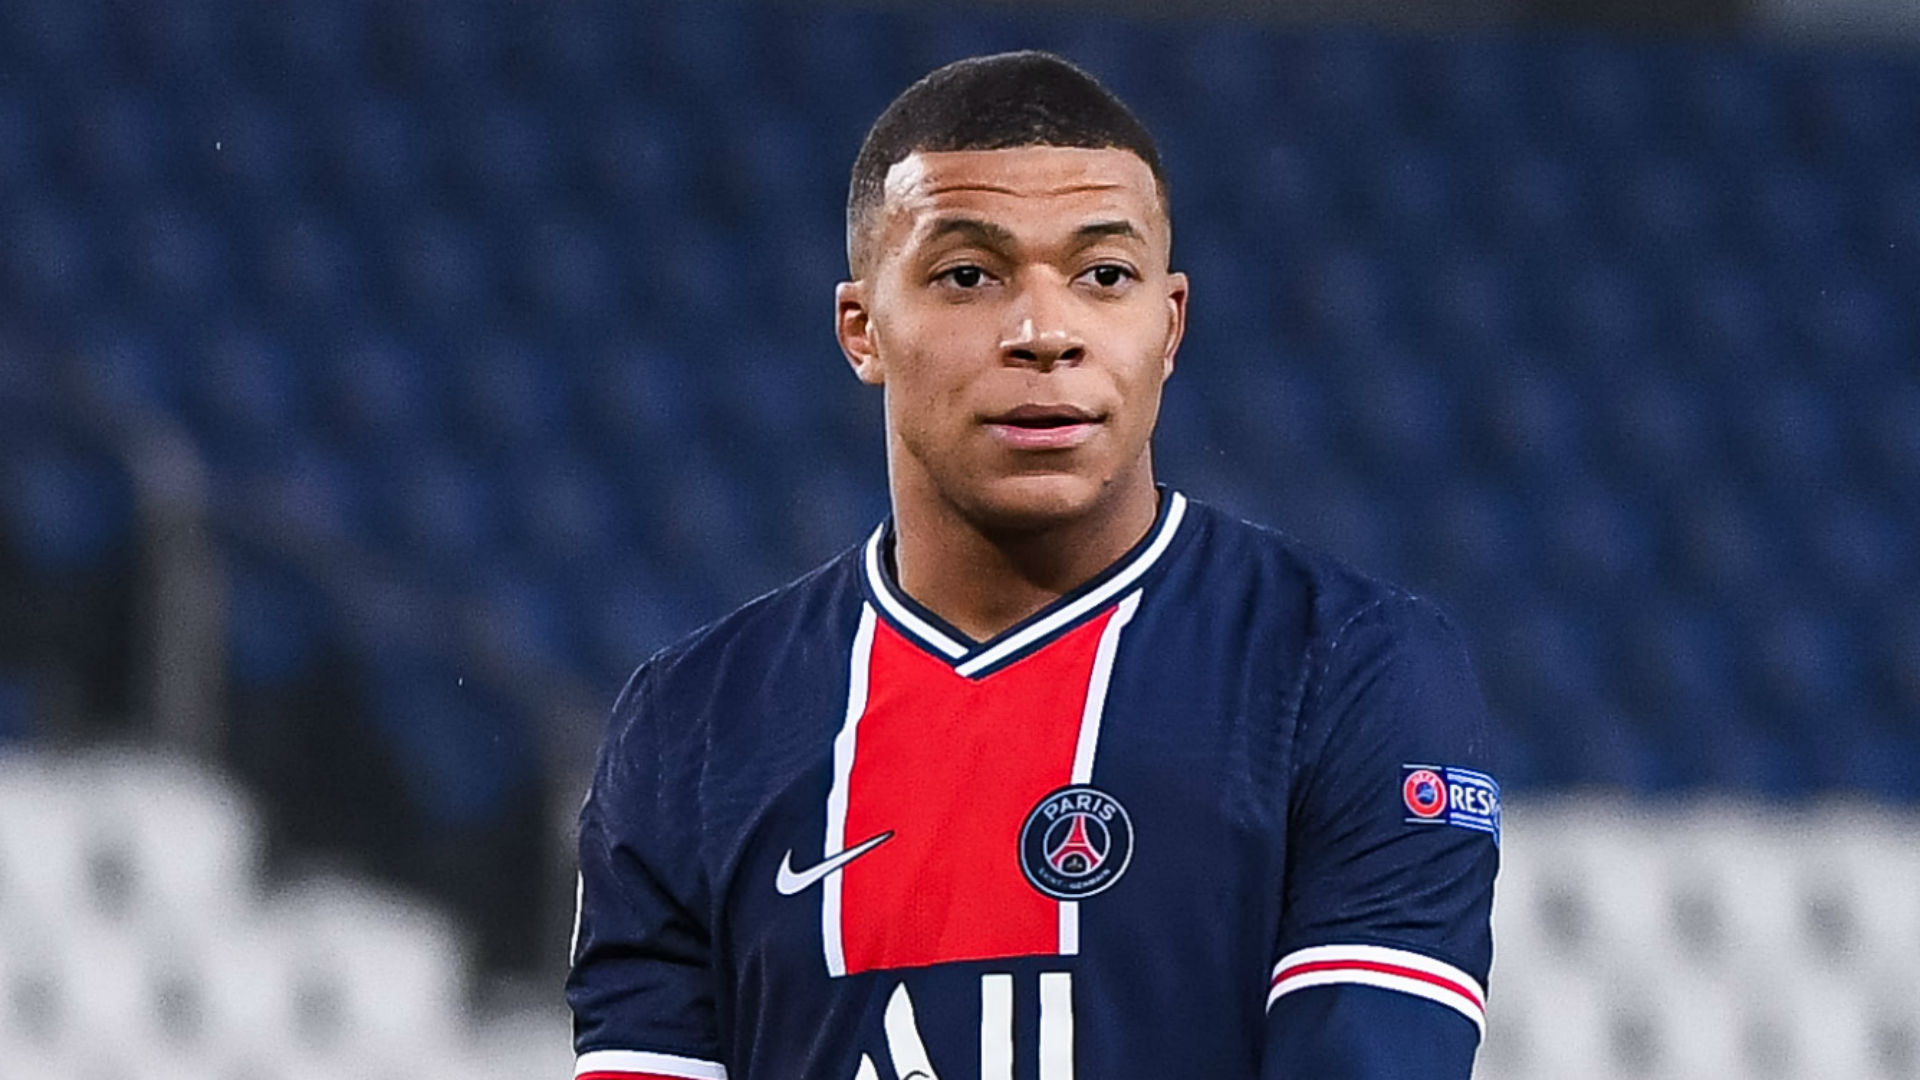 Pochettino backs 'special' Mbappe to find his best form at PSG